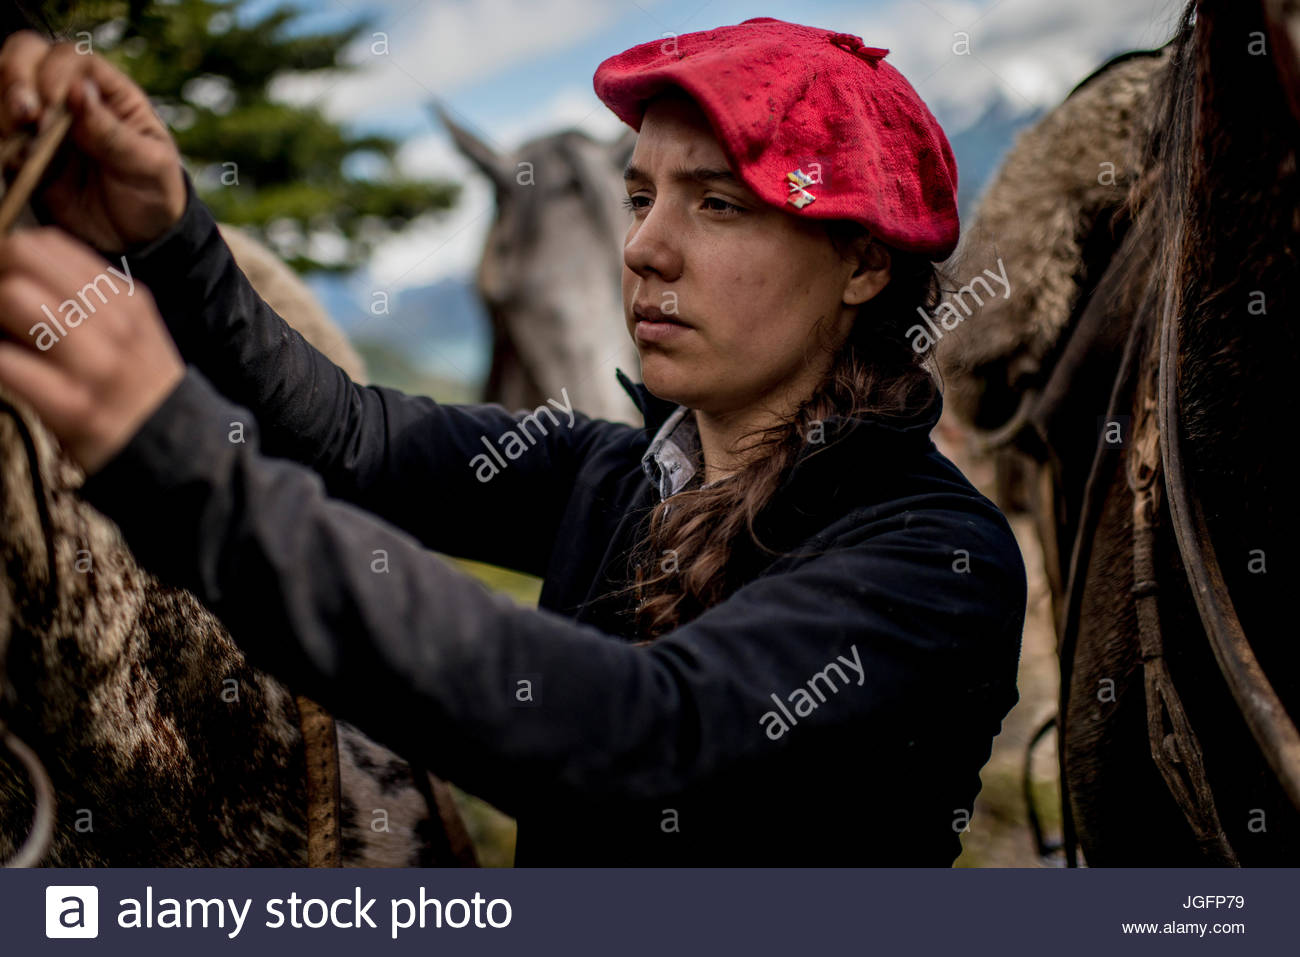 A woman pauses as she accompanies bagualeros, cowboys who capture feral livestock. - Stock Image